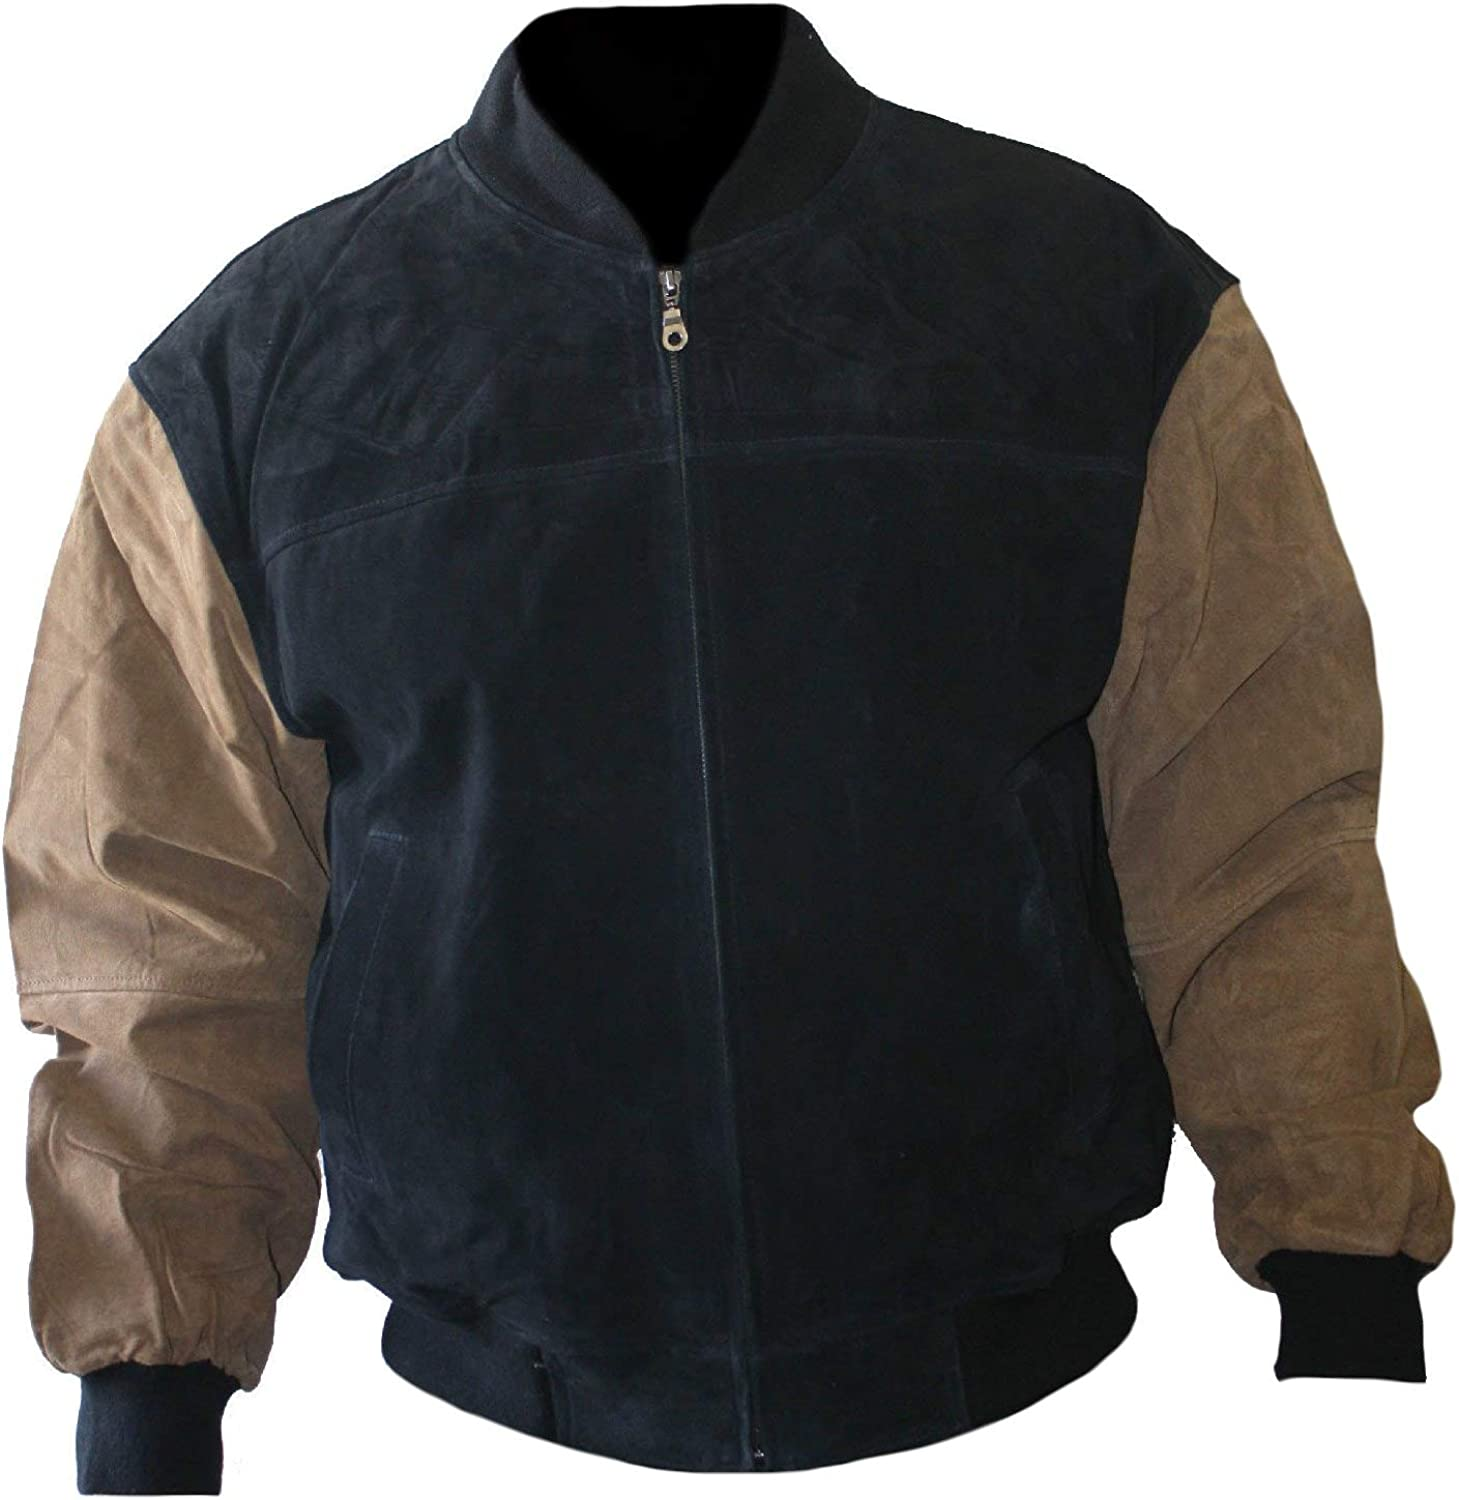 Stormwise Mens Fashion Bomber Style Black /& Brown Jacket